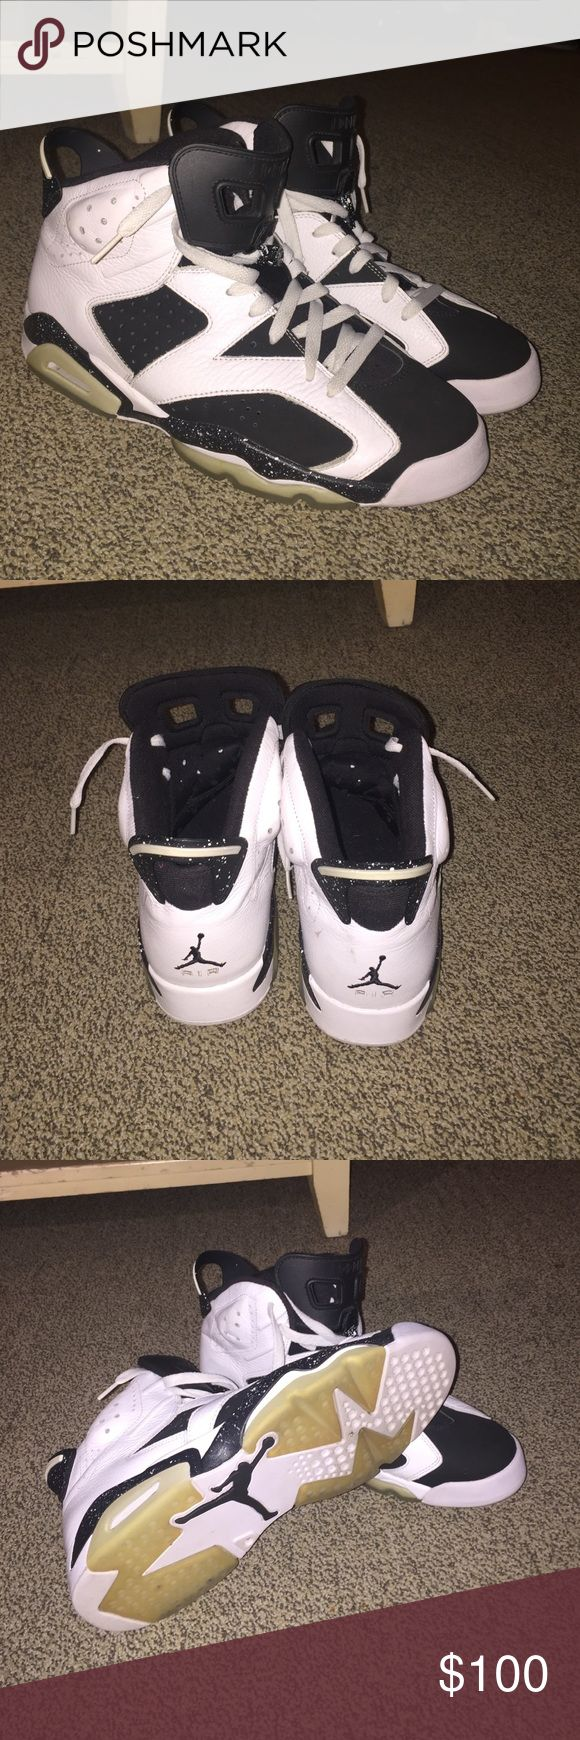 Air Jordan 6 Oreo Jordan Oreo 6's moderately worn. In good condition. Minor blemish on back of right shoe. Otherwise kept very clean. Jordan Shoes Sneakers